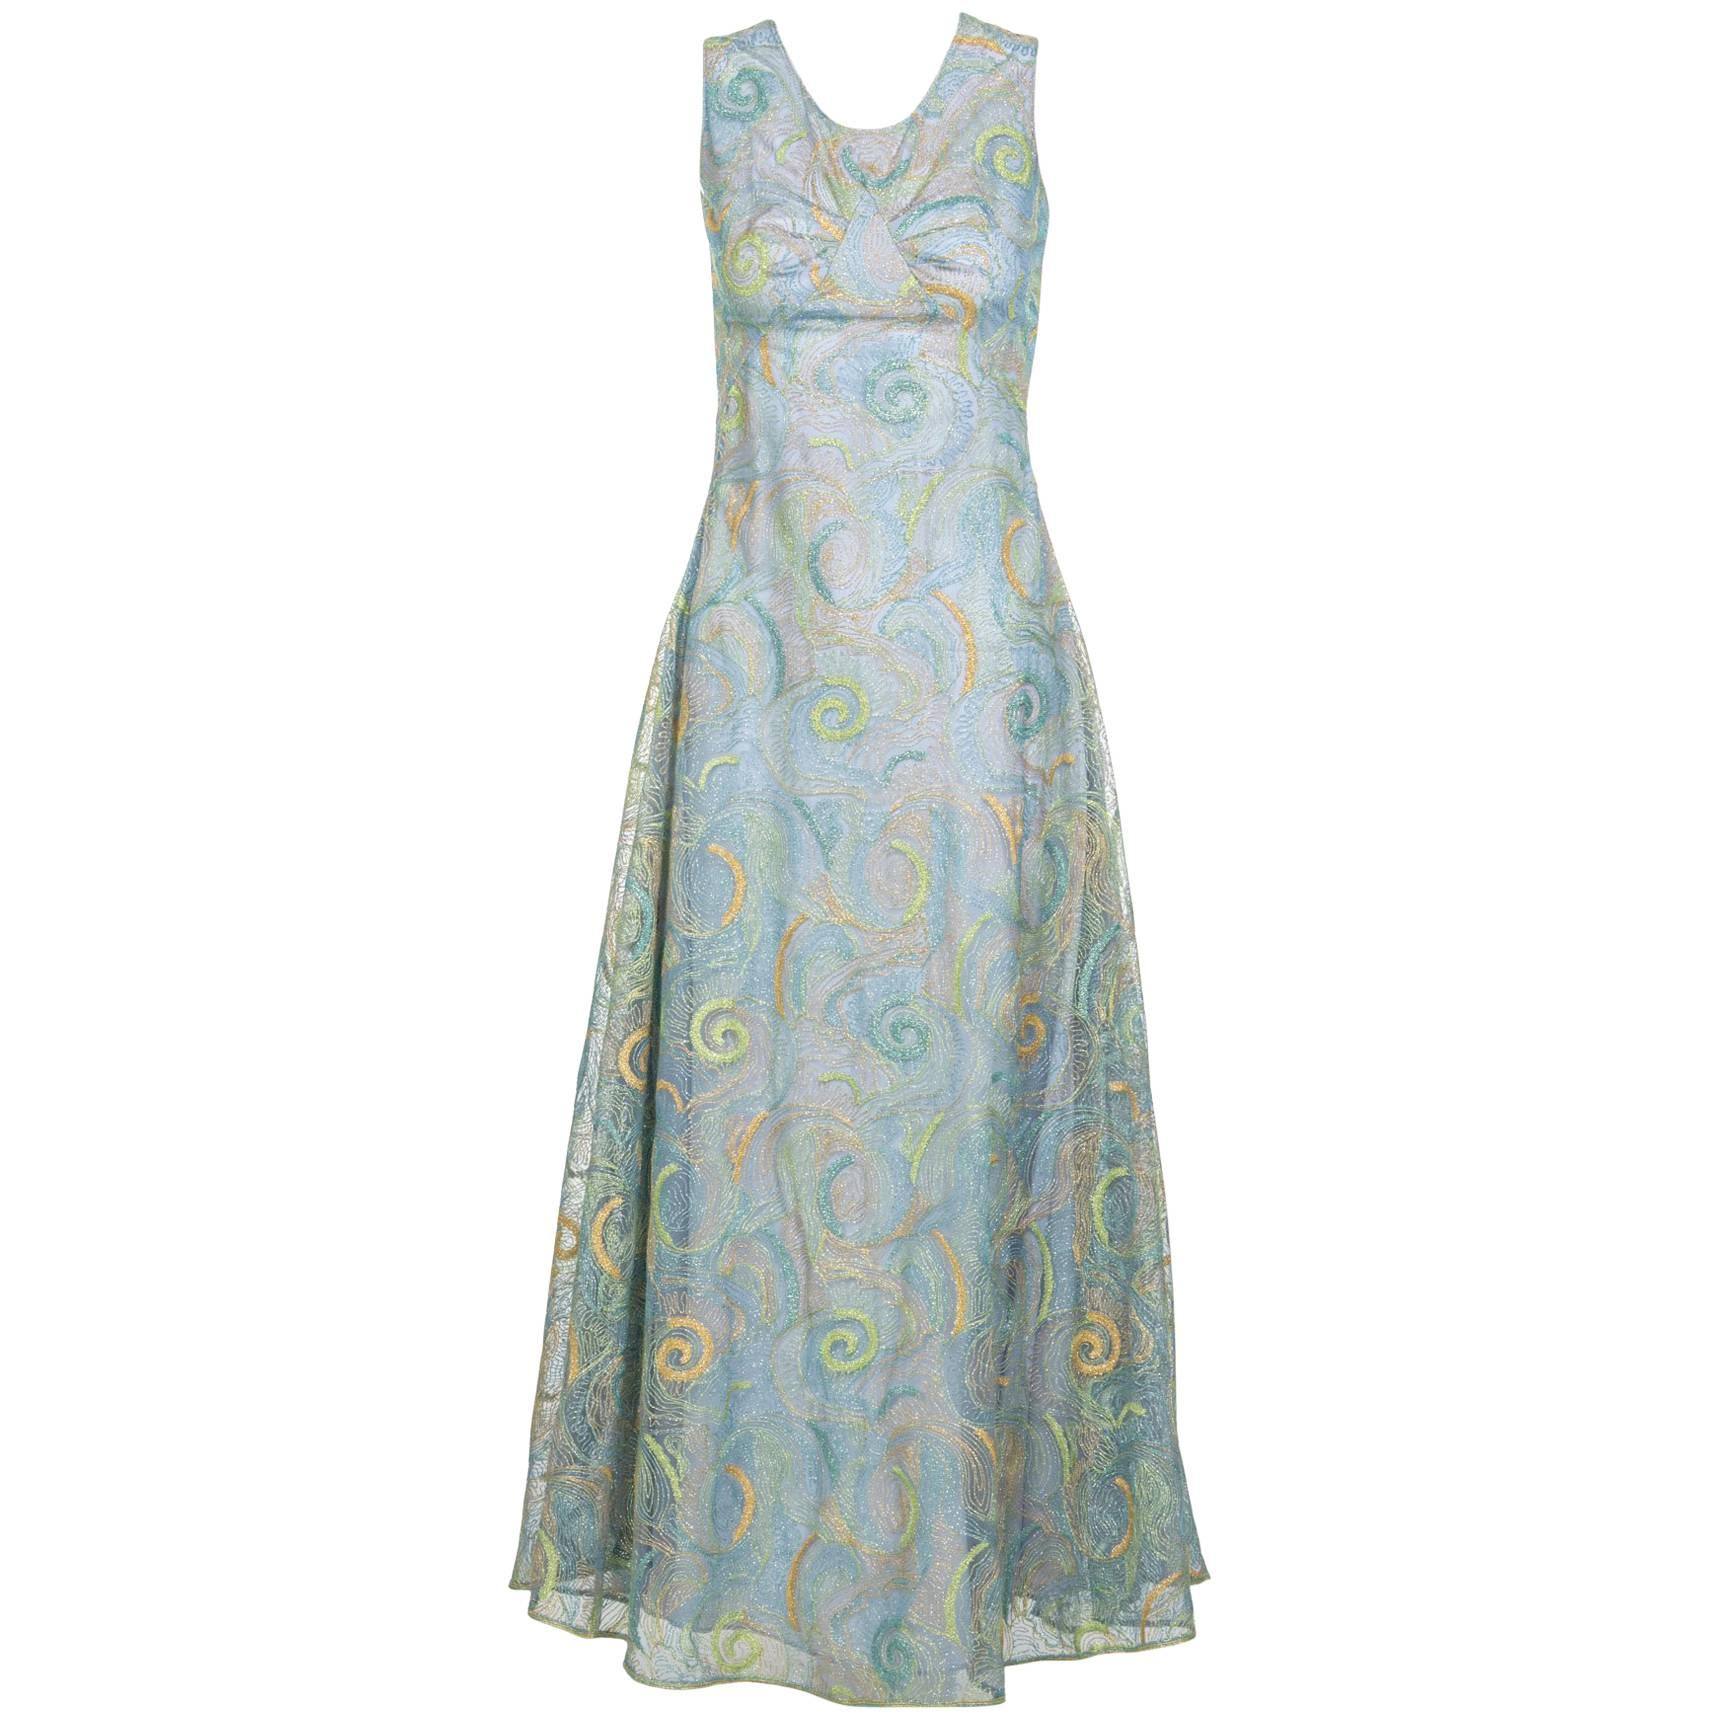 2102 Rodarte Van Gogh Multicolored Metallic Embroidered Tulle Dress